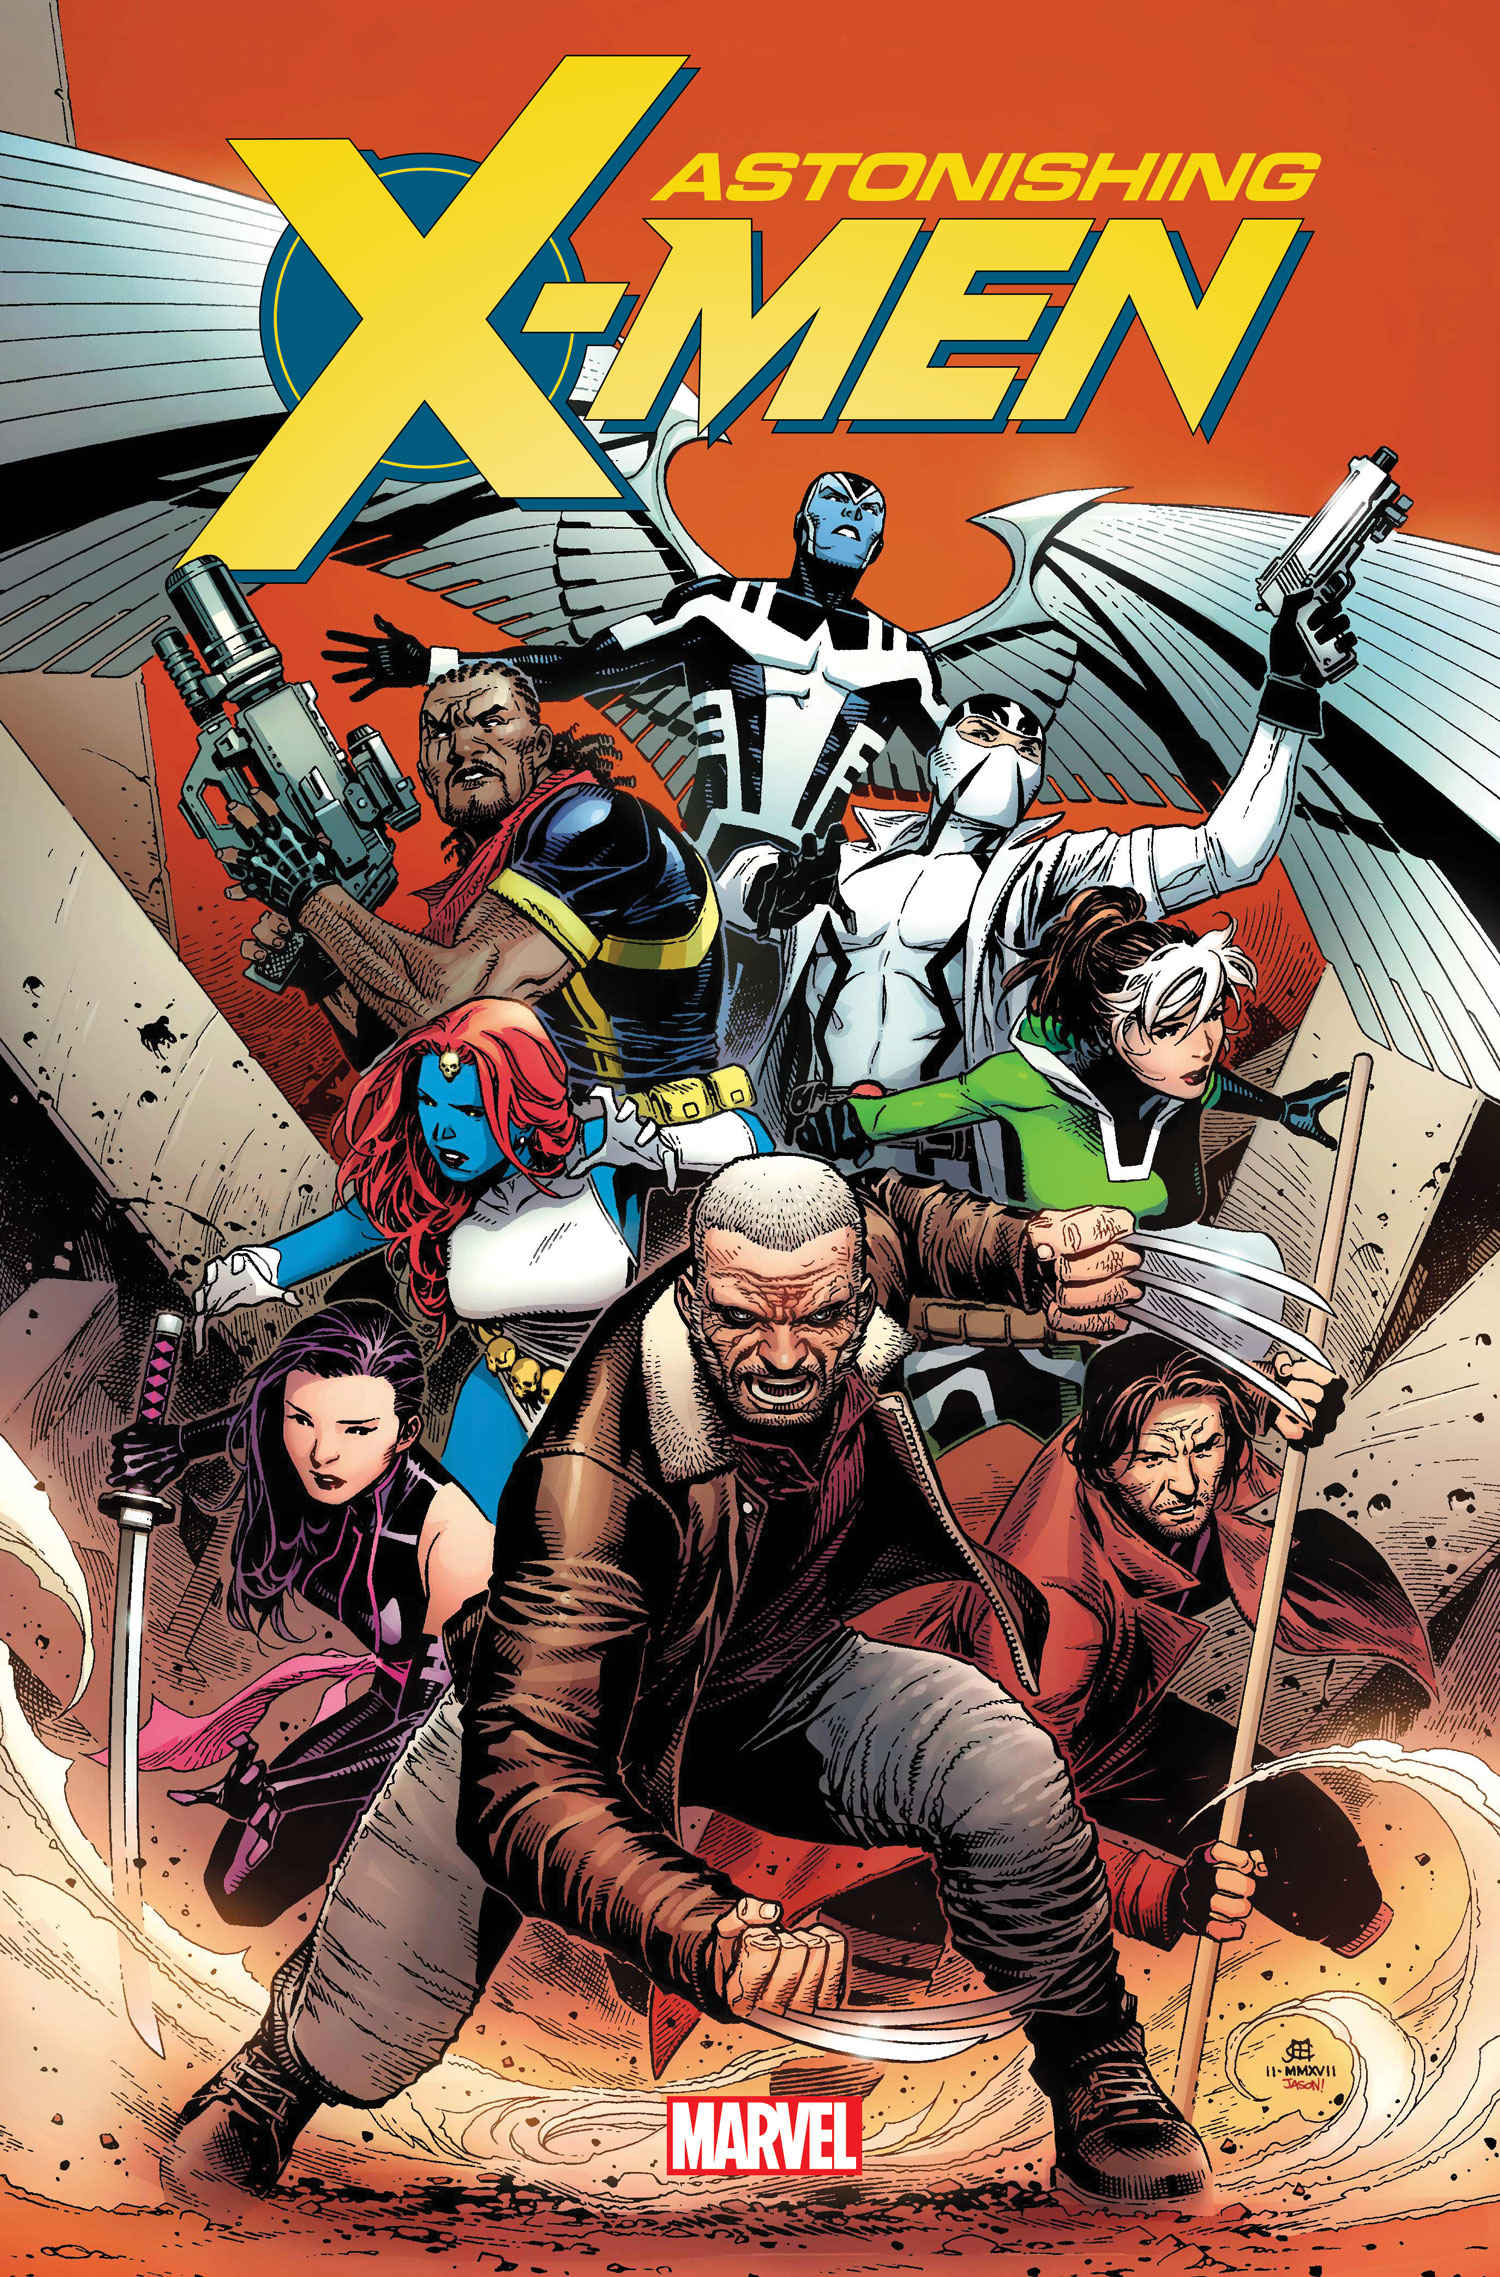 Astonishing X-Men To Launch This Summer With Charles Soule At The Helm